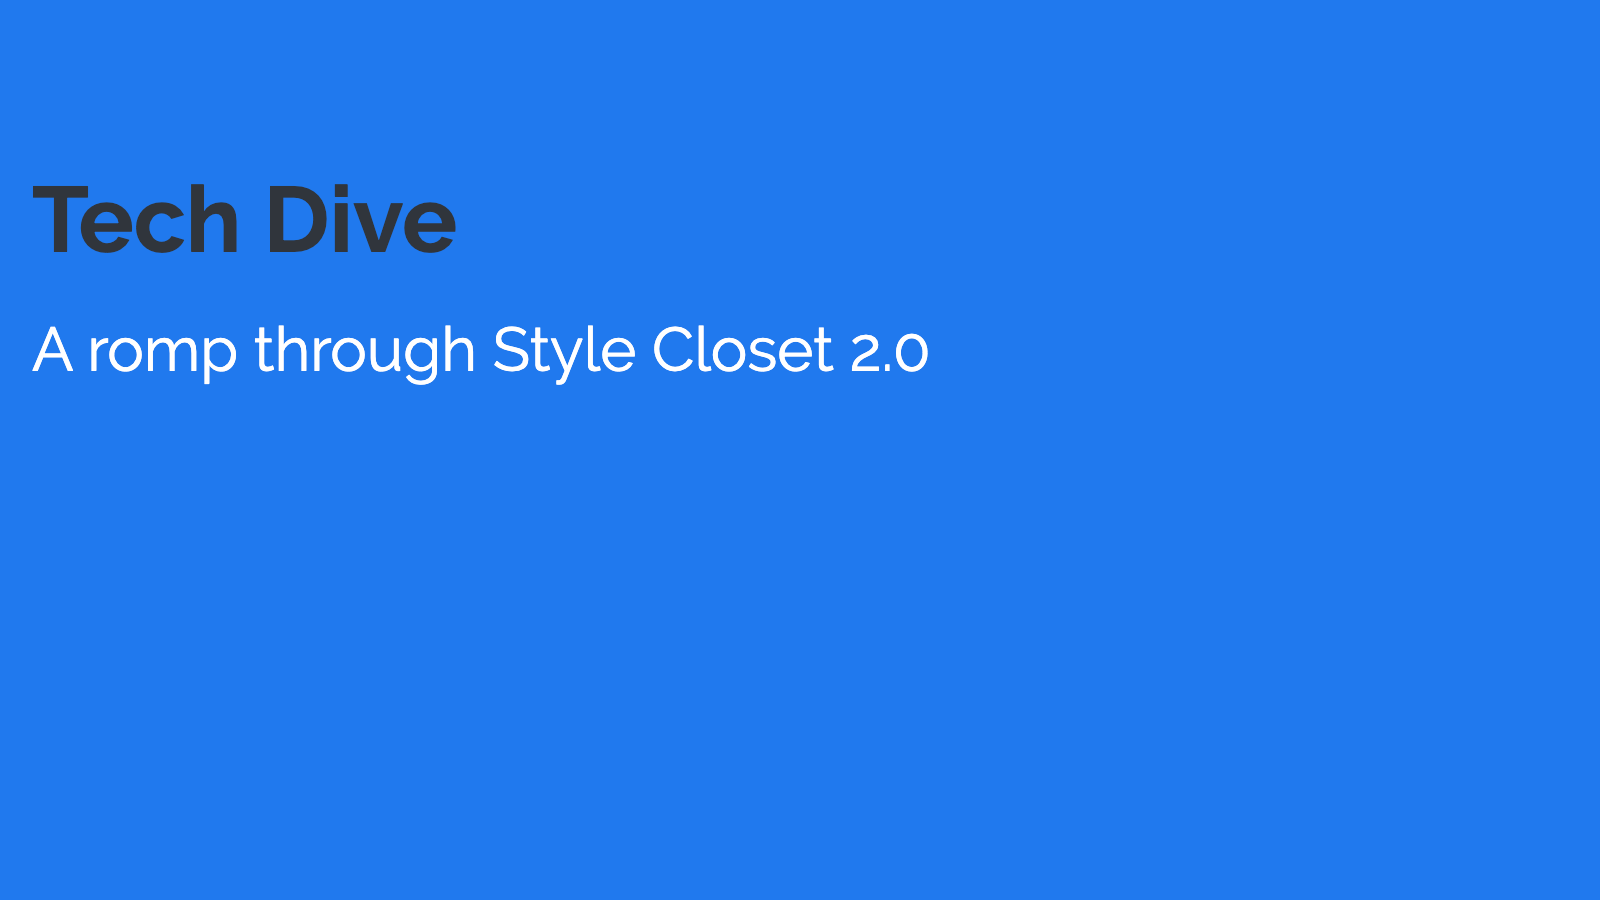 Slide content, Tech Dive: A romp through Style Closet 2.0